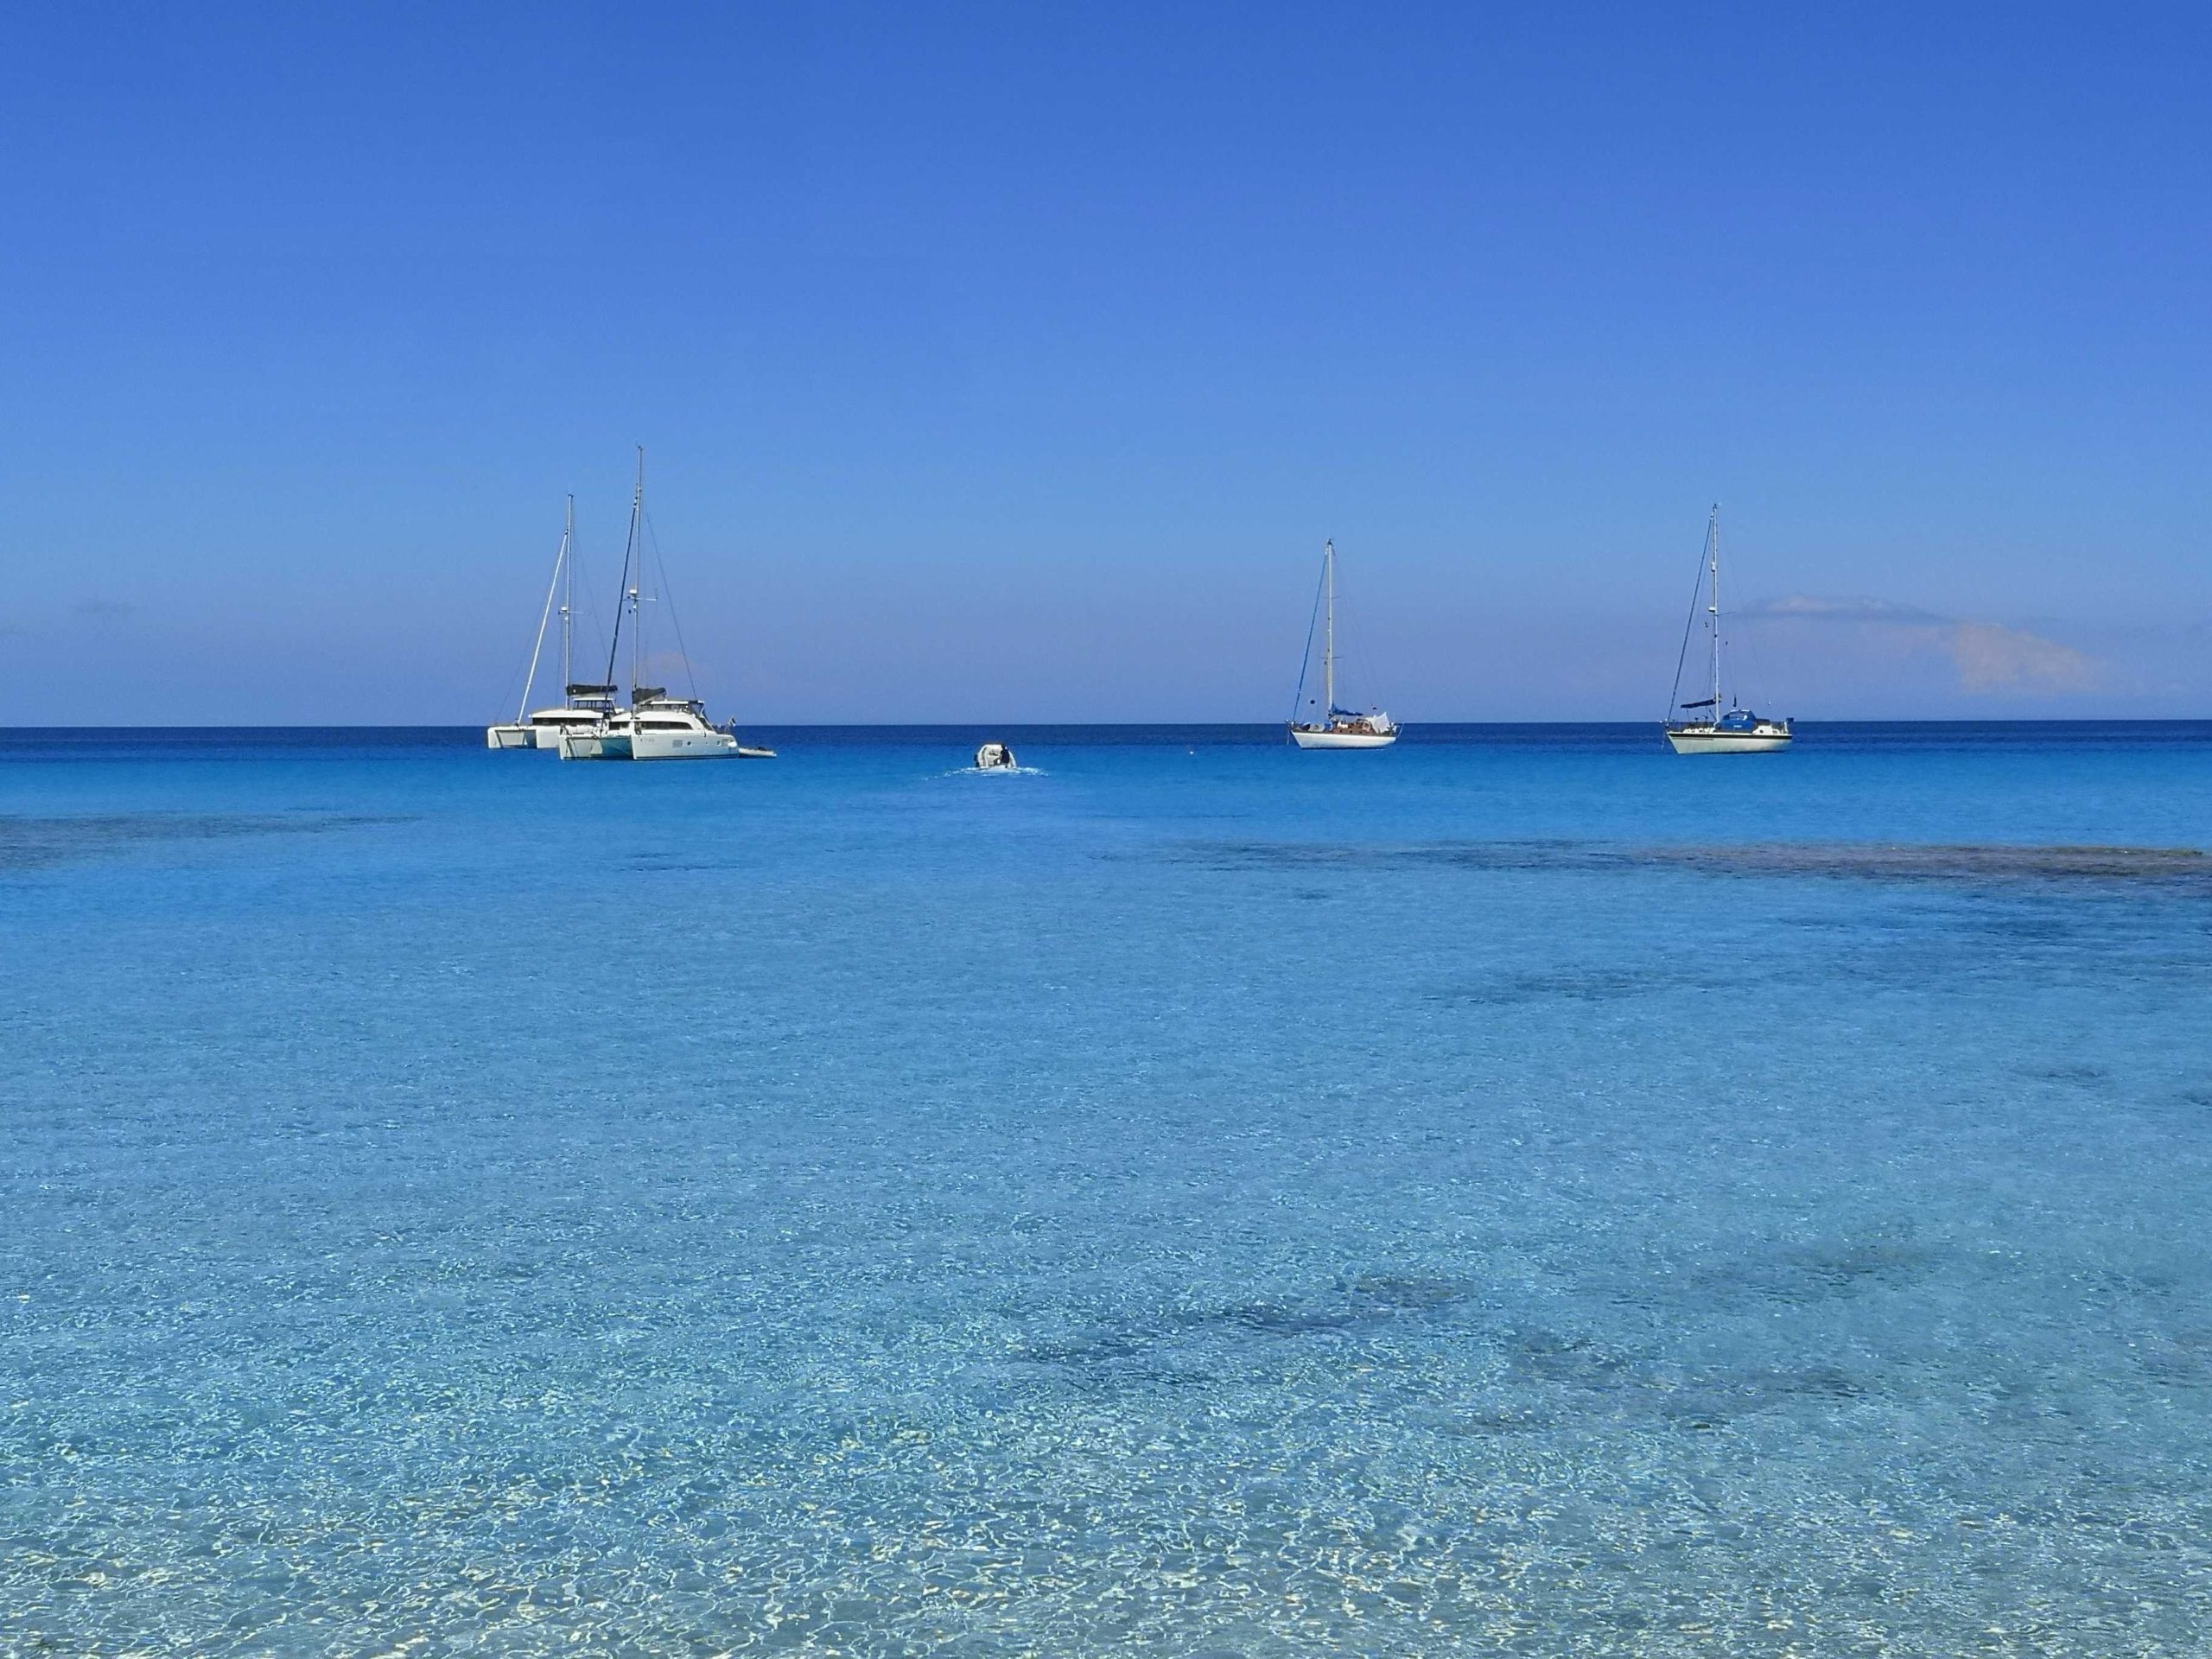 The boats in Formentera